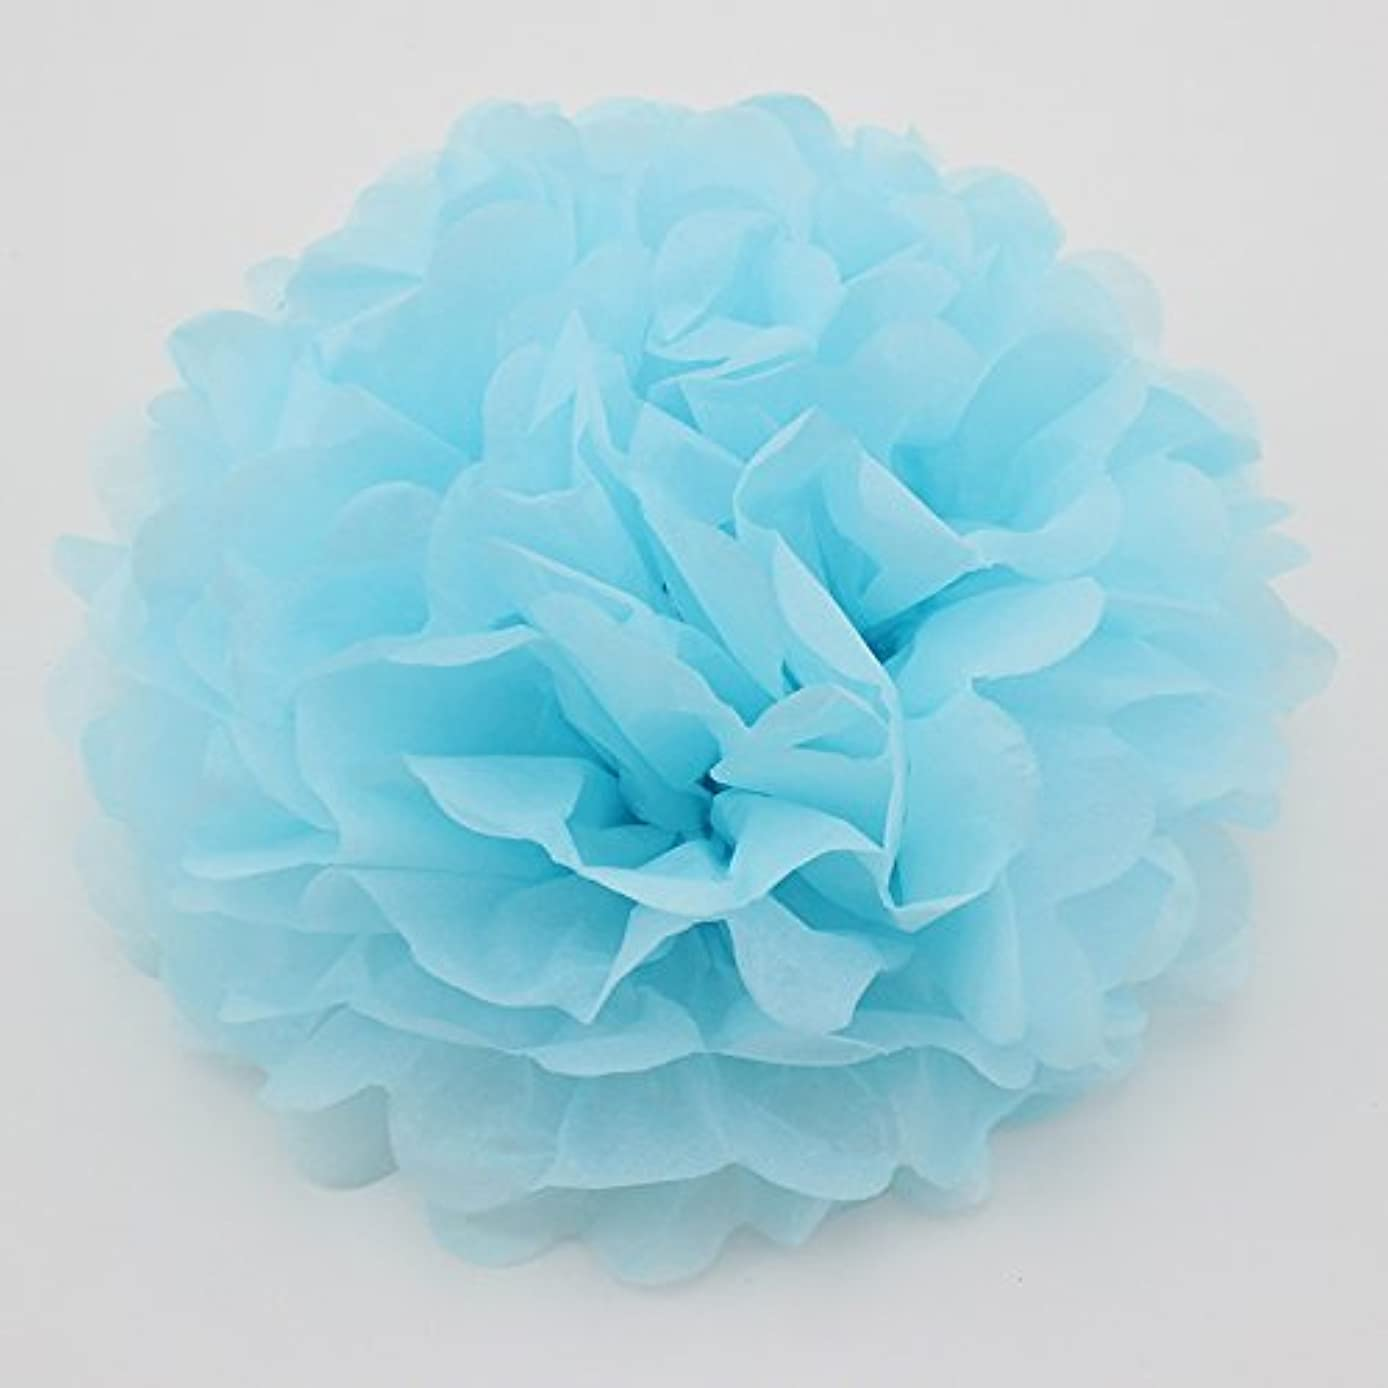 Since10 Pack 10 Inch Tissue Paper Flowers,Tissue Pom Poms Decor,Tissue Paper Pom Poms,Christmas Wedding Party Decor,Baby Shower Party Supplies,Tissue Paper Flowers Kit,Pom Poms Craft(Light Blue)